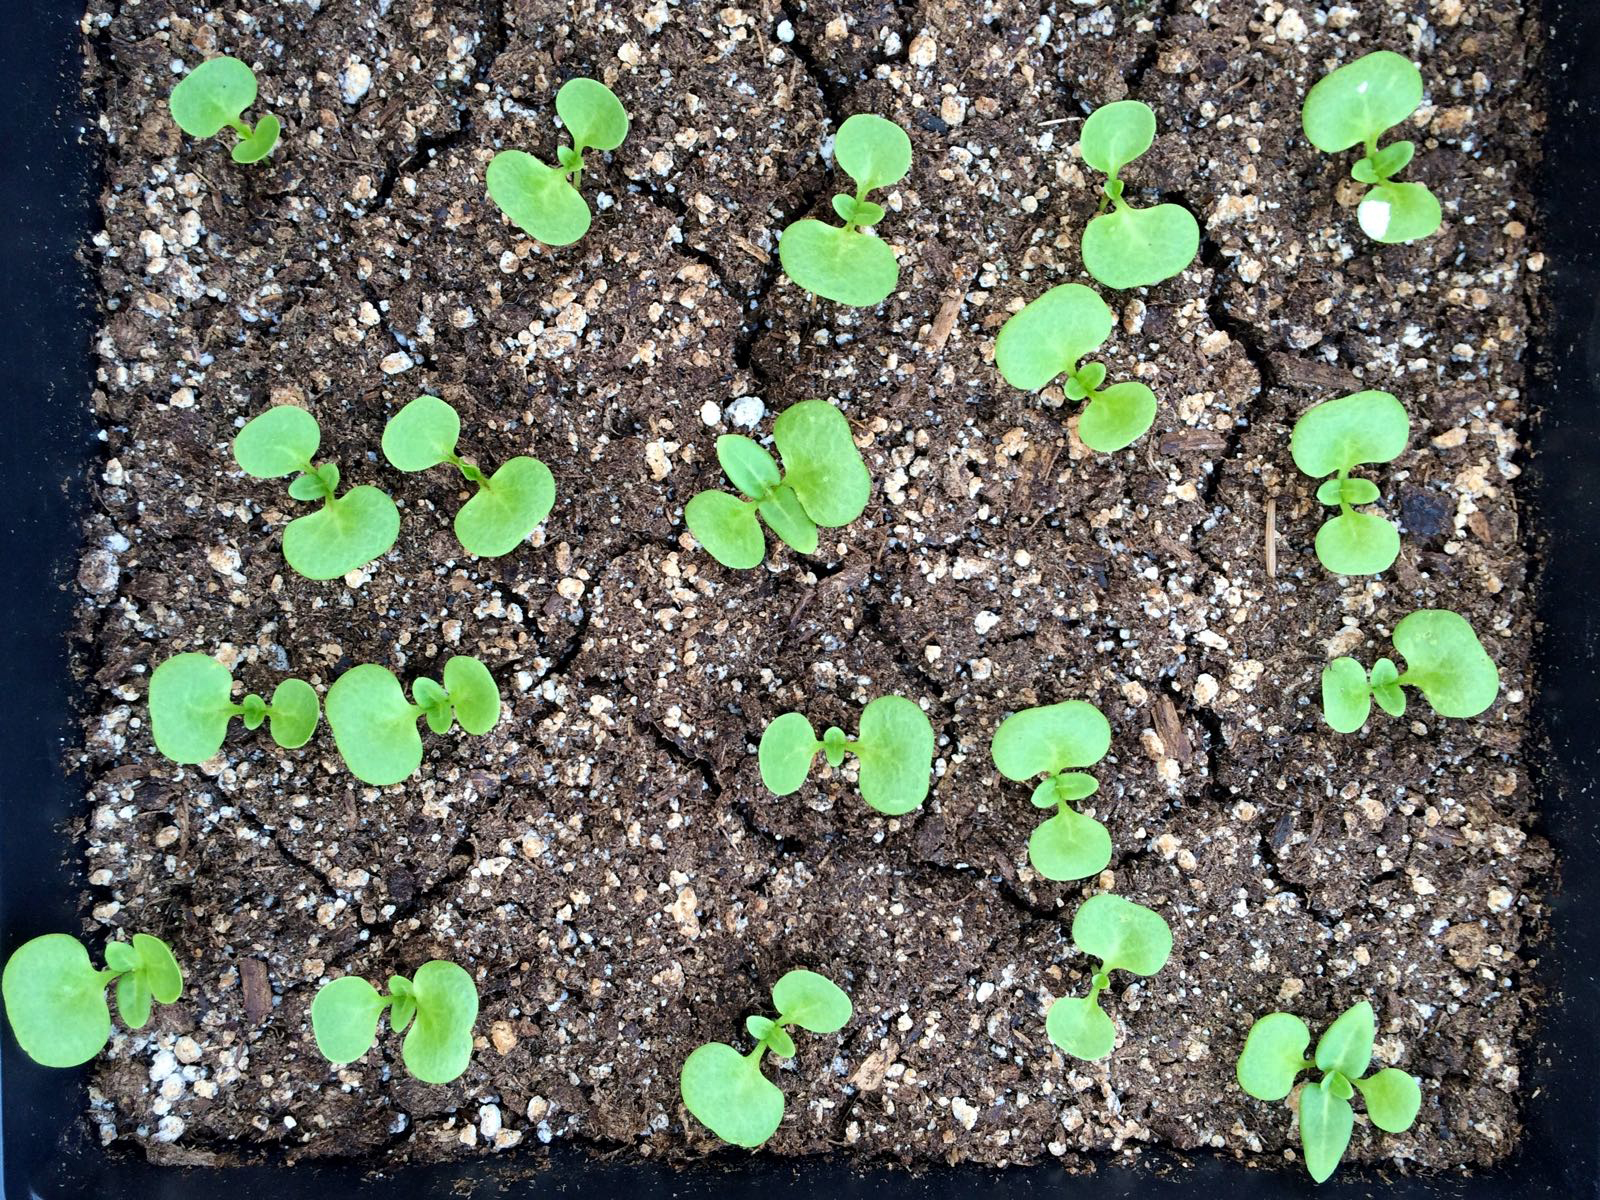 Mirabilis-expansa-seedlings